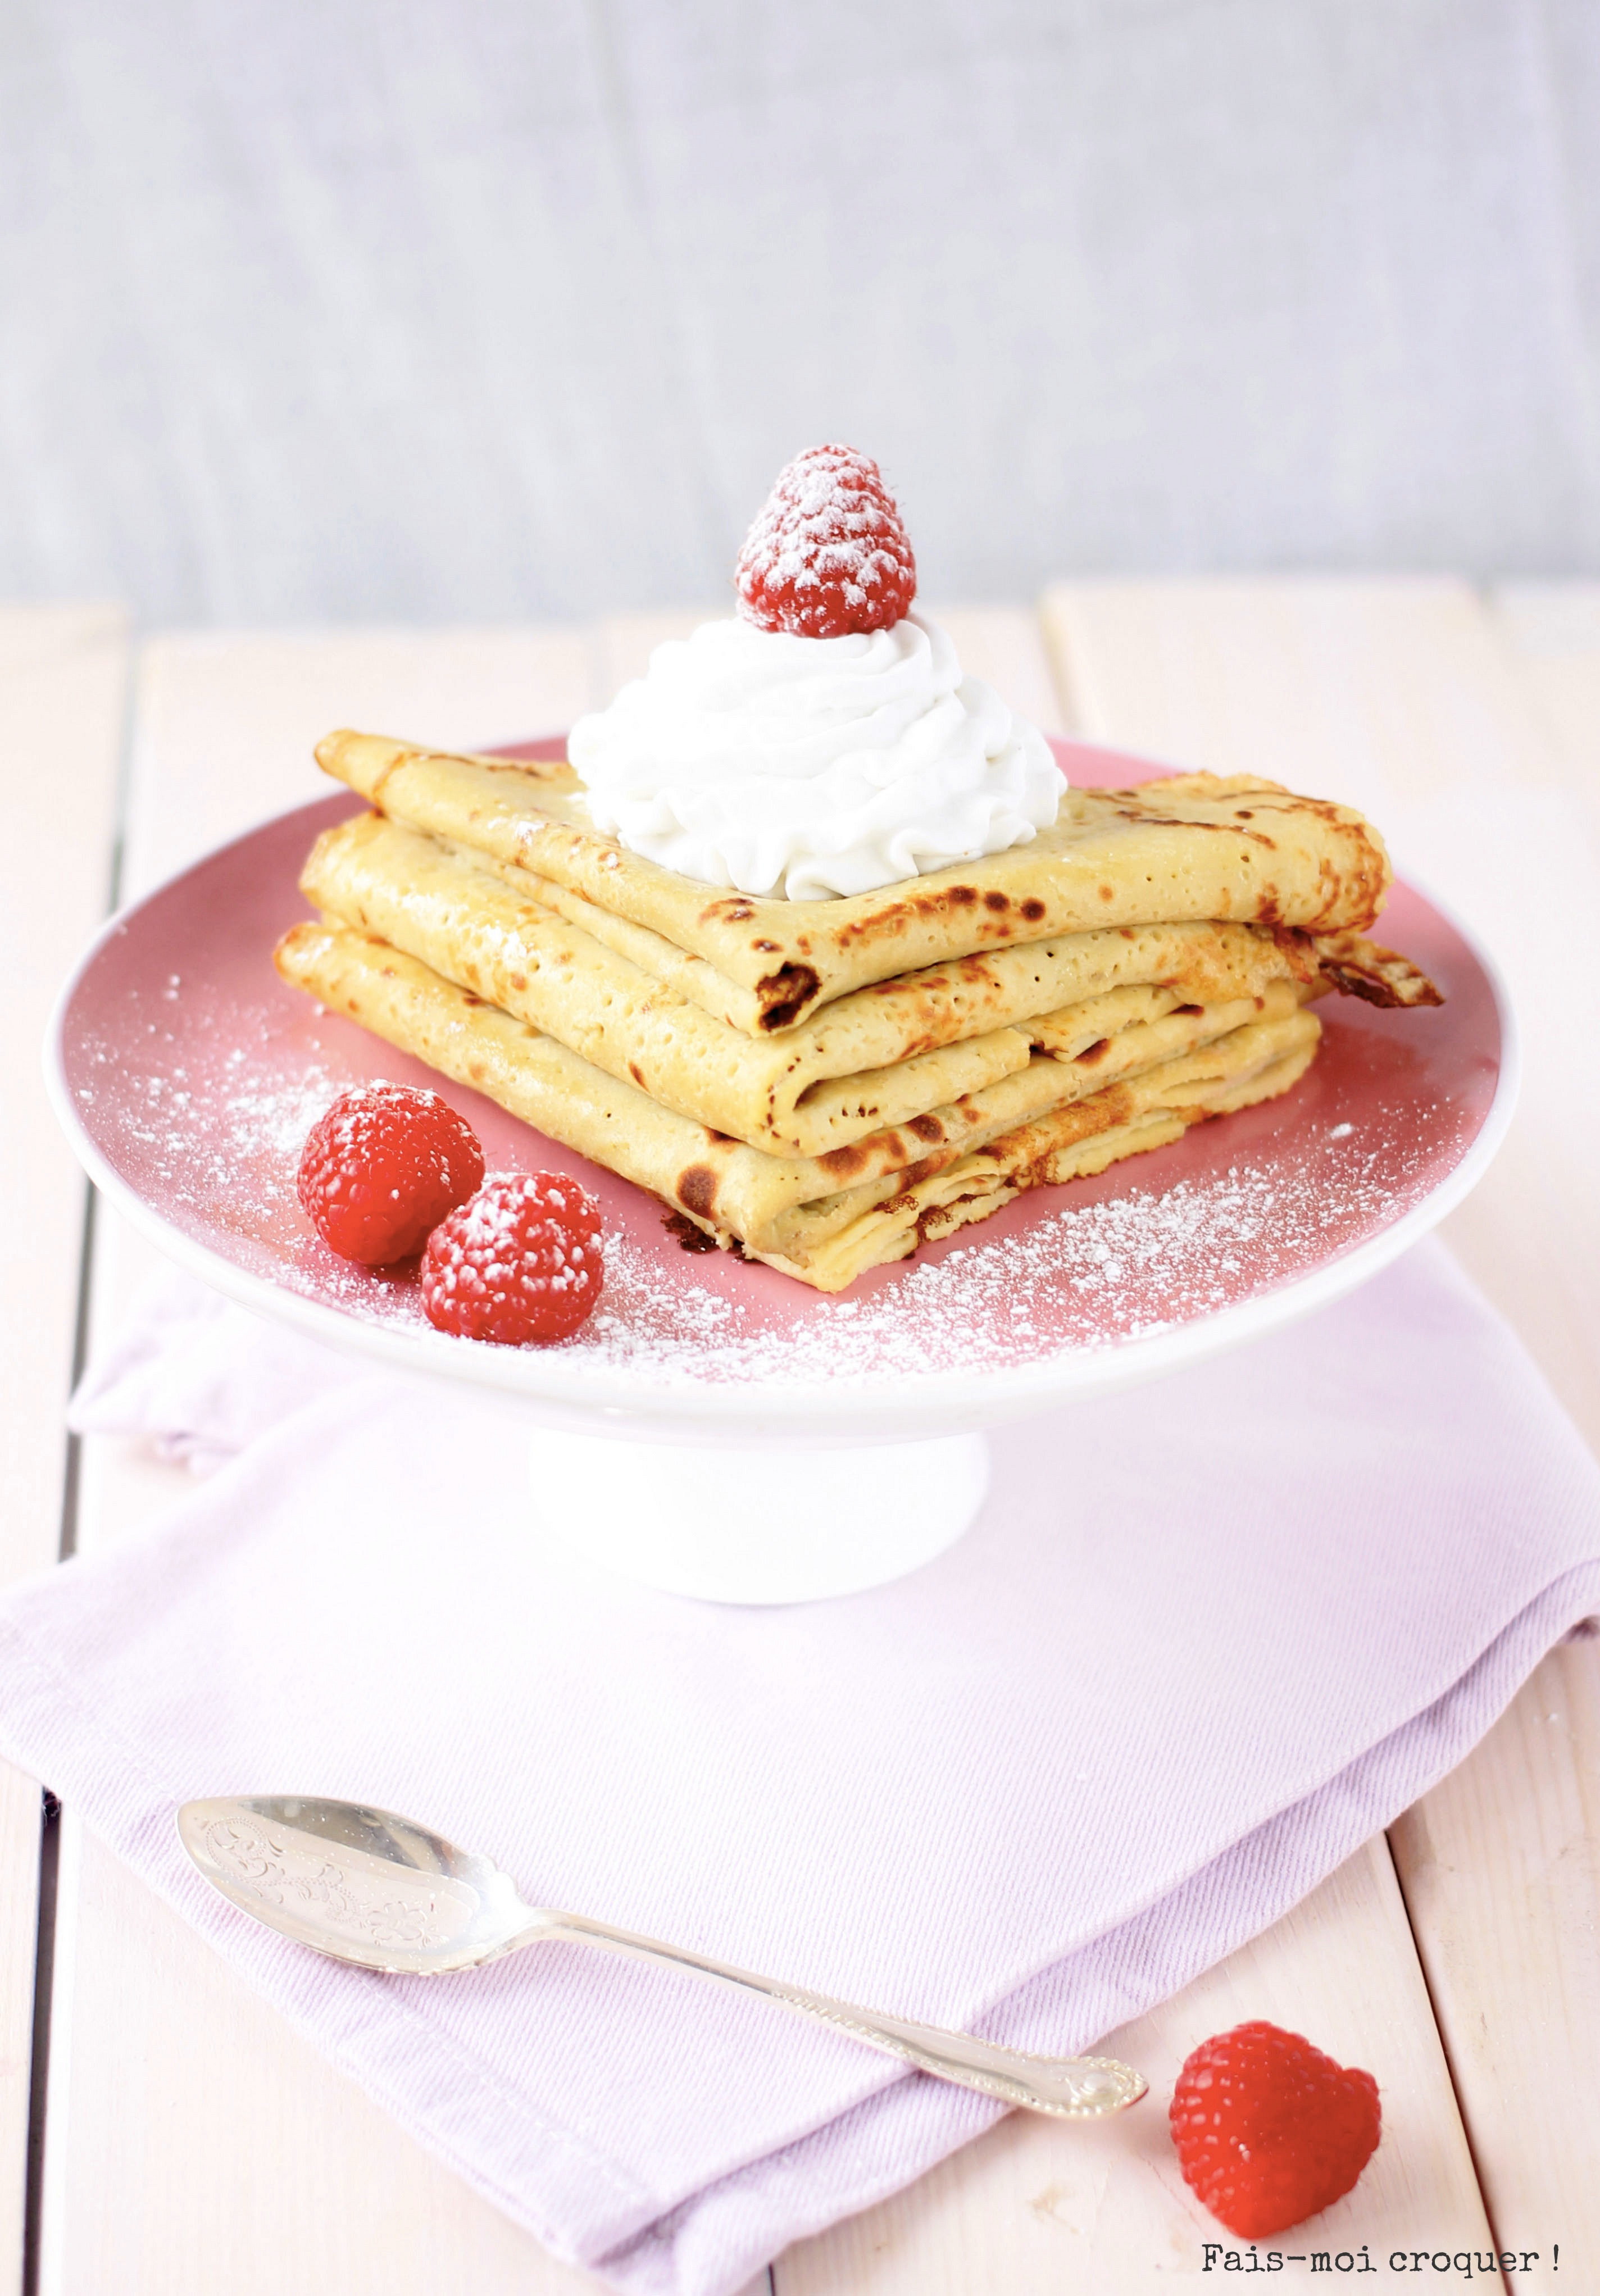 Garniture crêpe chantilly vegan